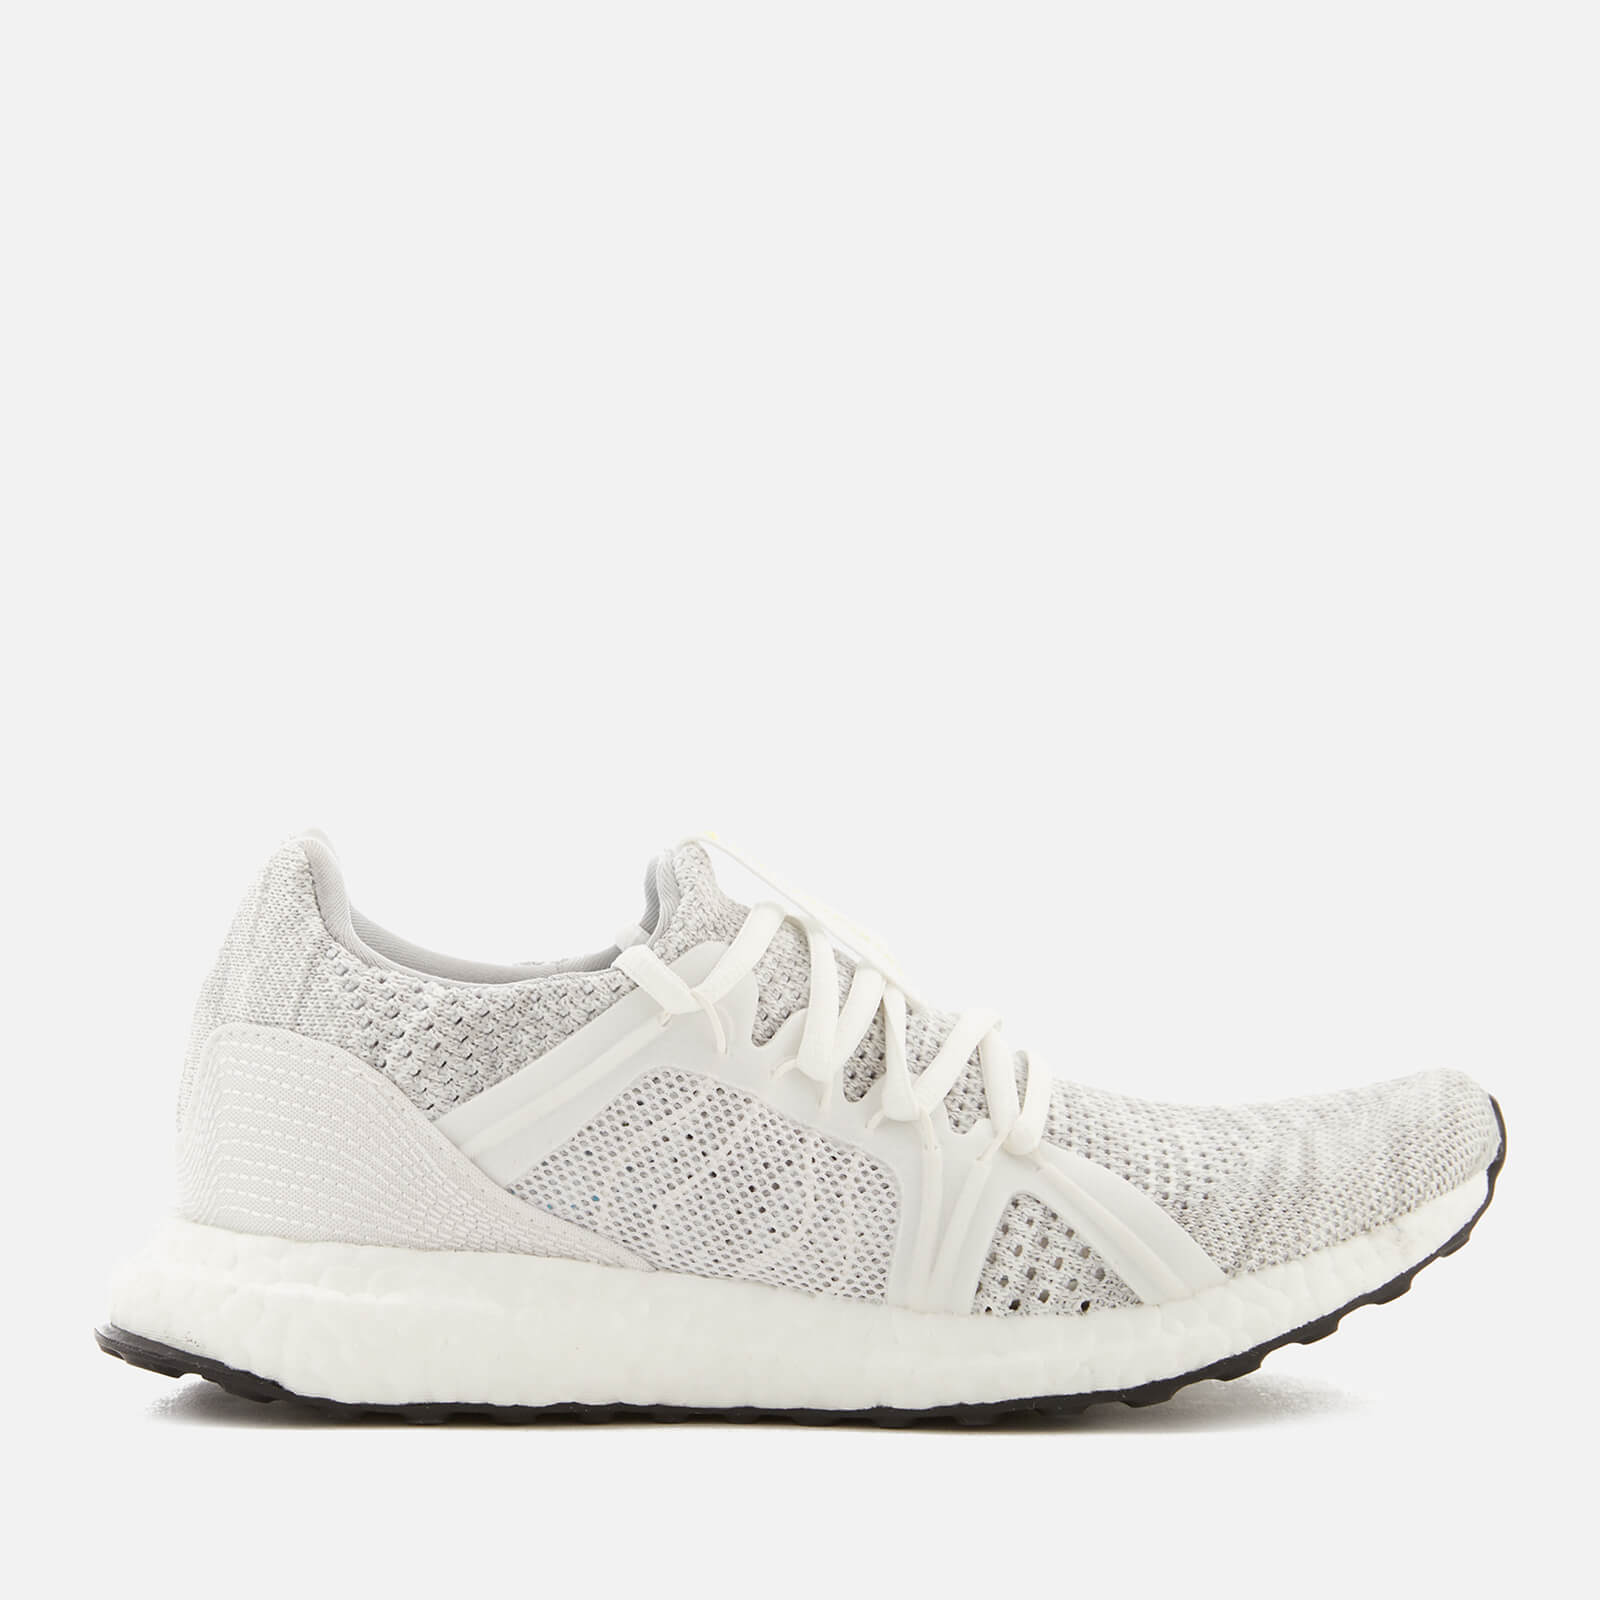 d2fc1eb6d49 adidas by Stella McCartney Women s Ultraboost Parley Trainers - Stone Core  White Mirror Blue - Free UK Delivery over £50